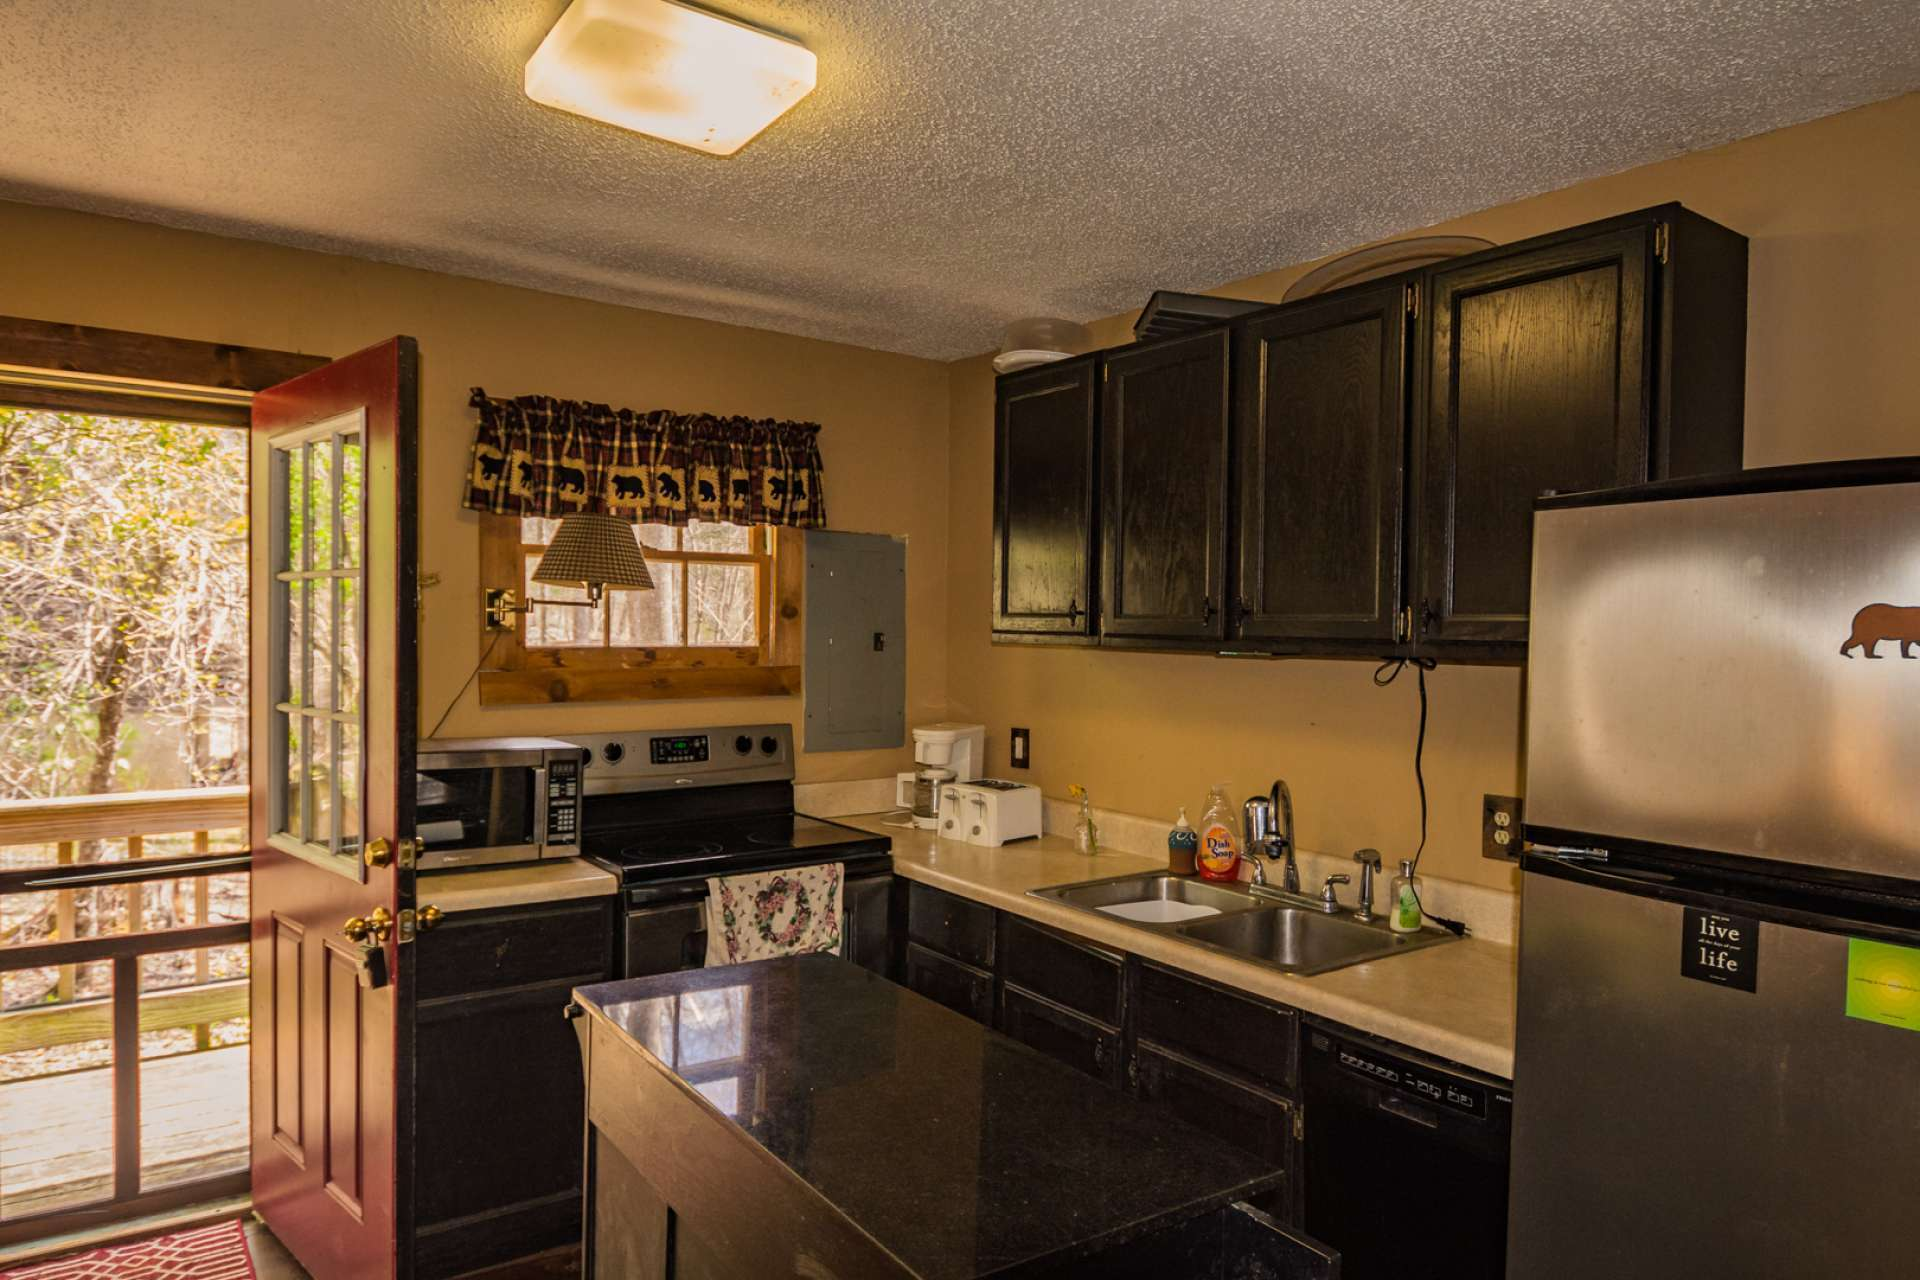 The functional step saving kitchen offers stainless appliances with ample work and storage space, and opens up to the back porch